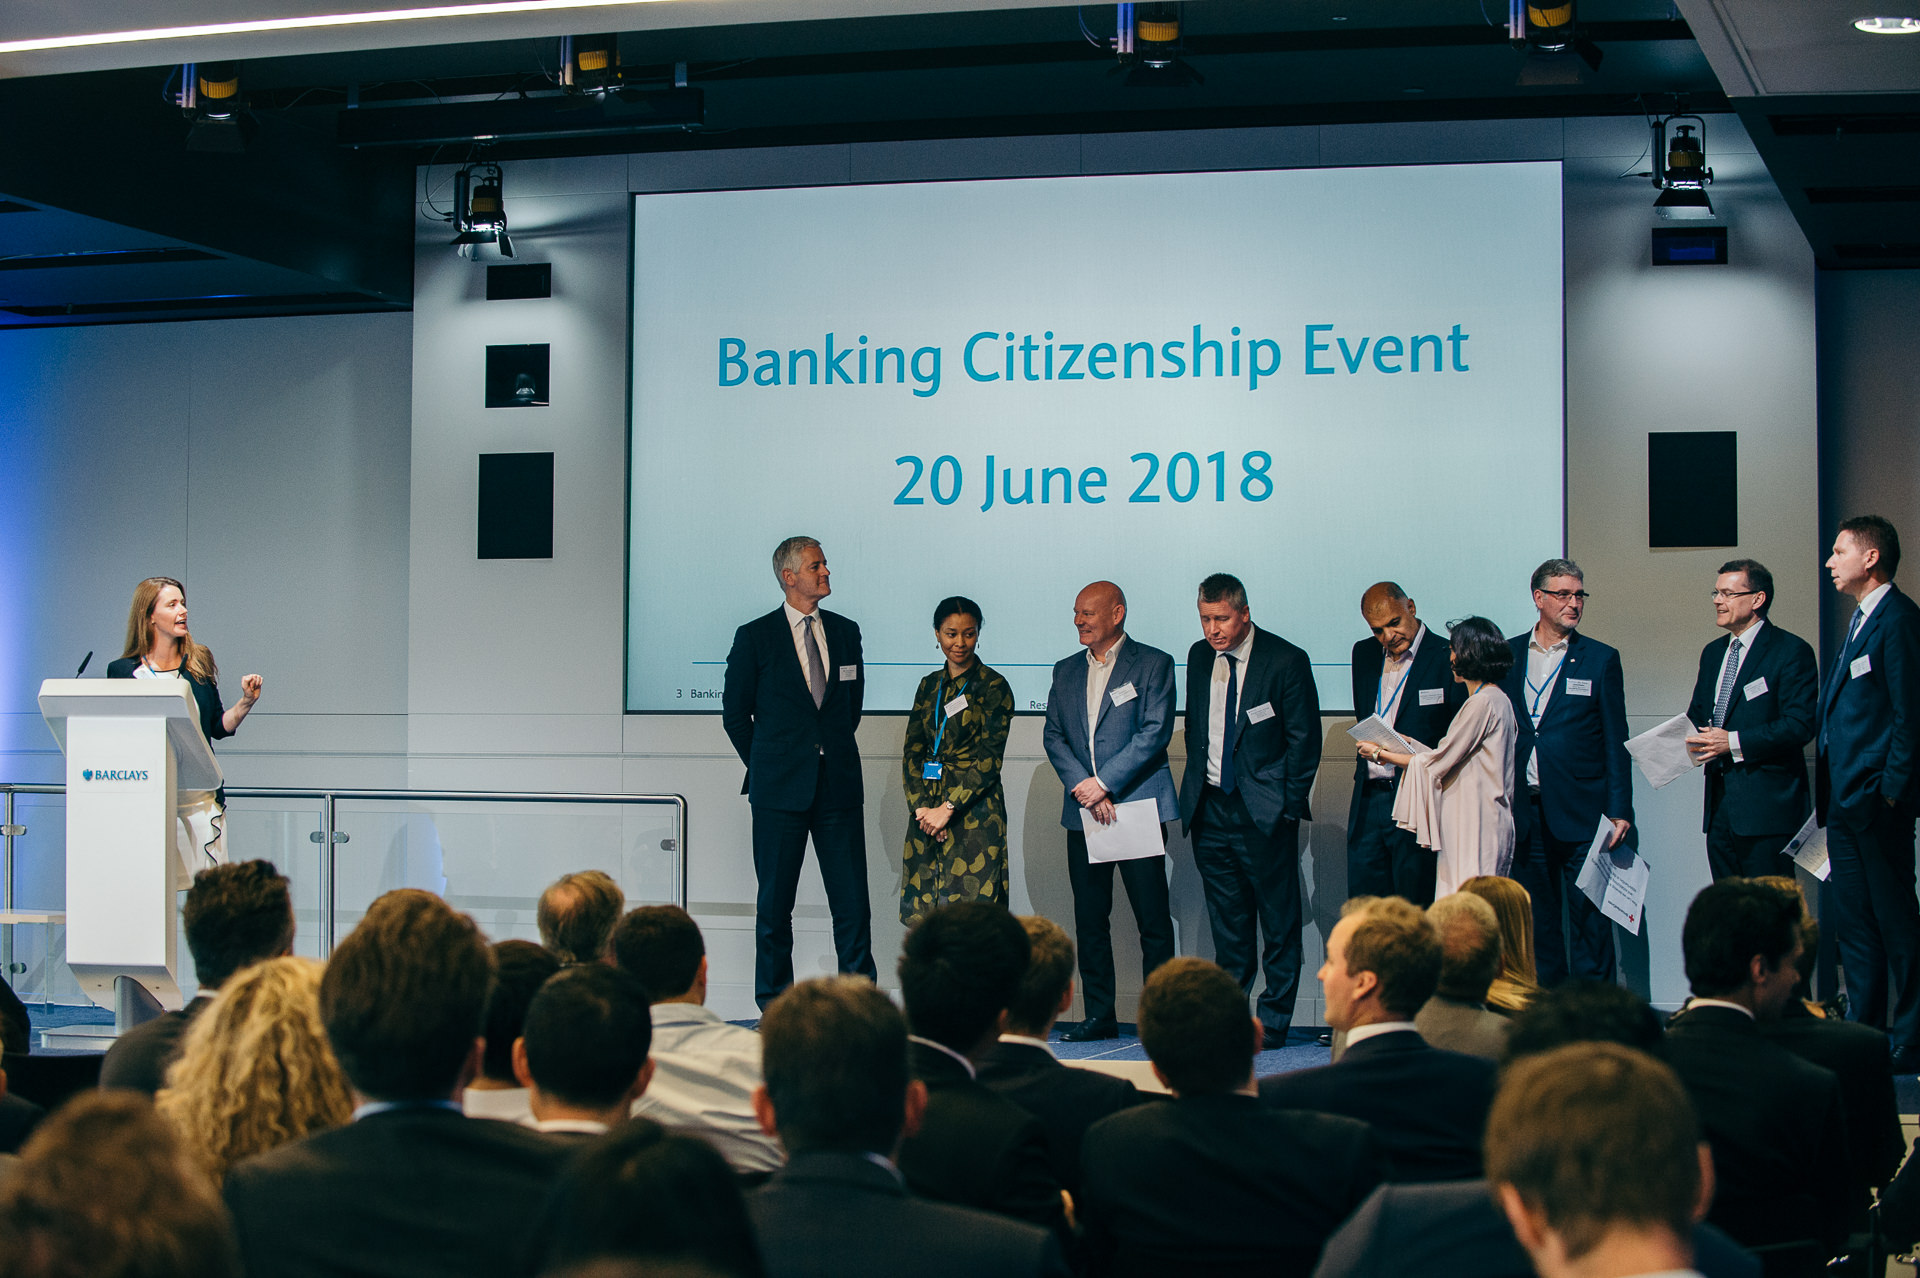 Banking citizenship event 2018 people on stage